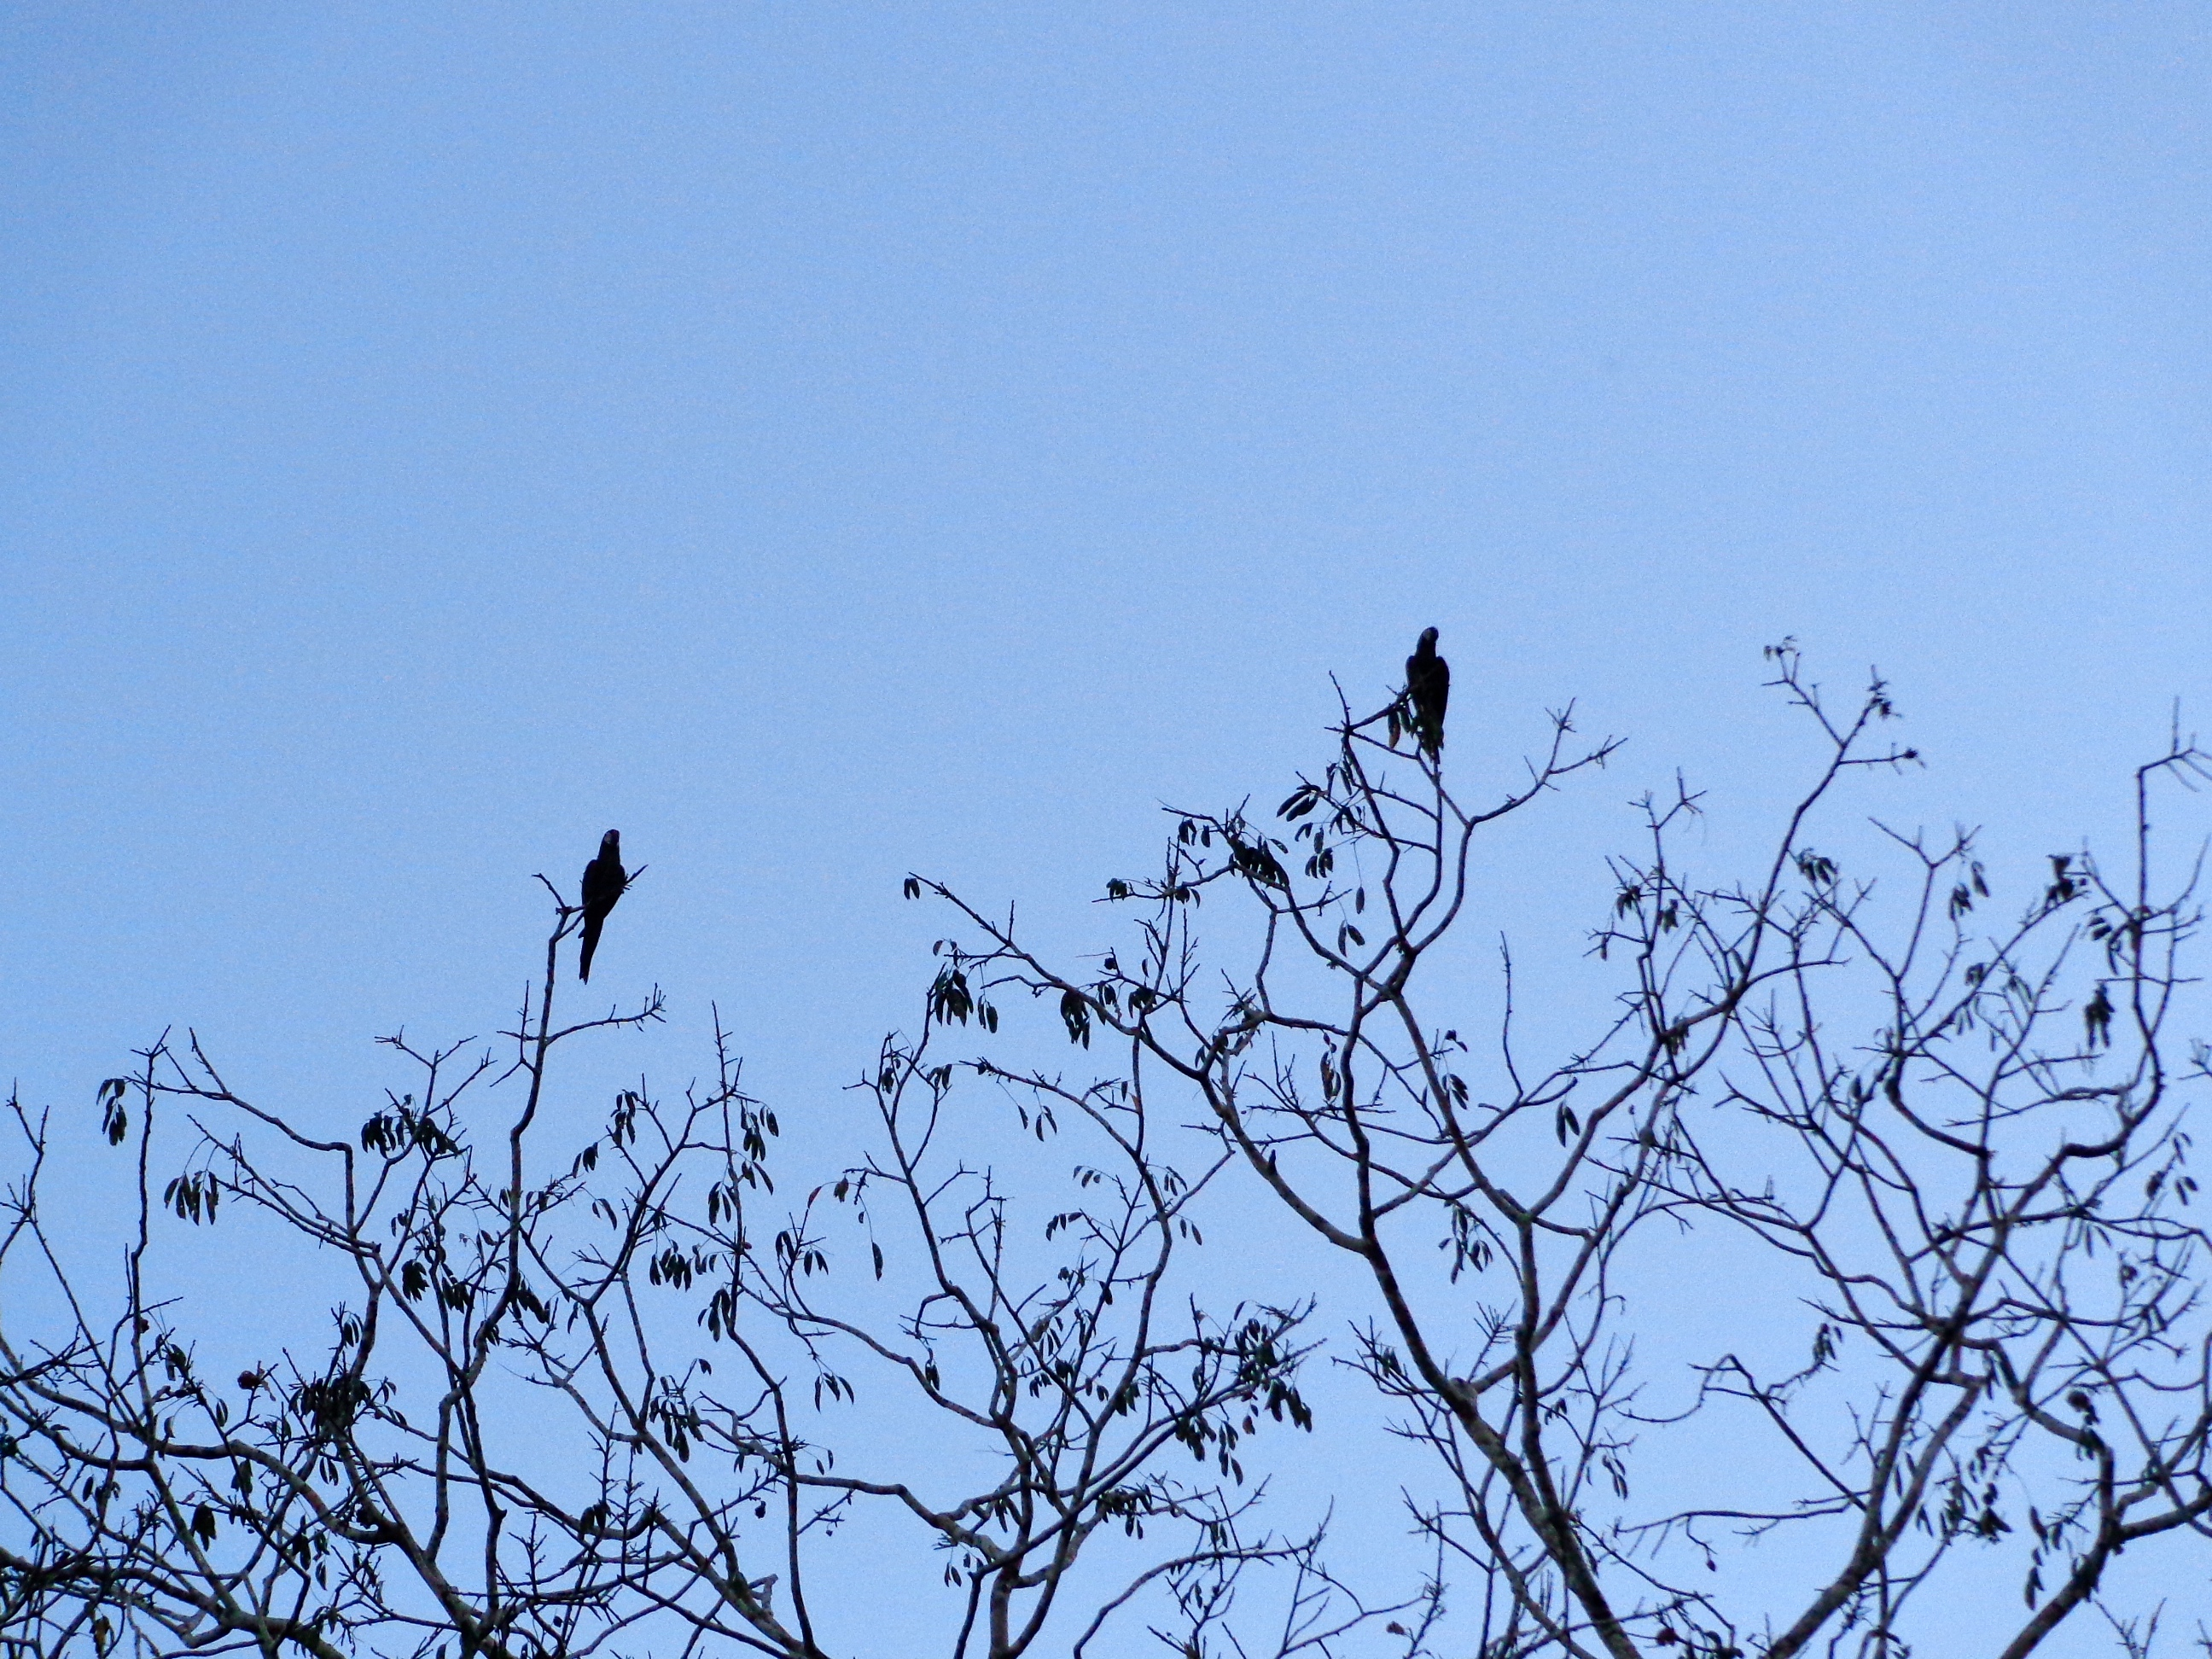 My interest in the birds was extremely short-lived. These are some macaw silhouettes from a bird-viewing platform in the jungle.